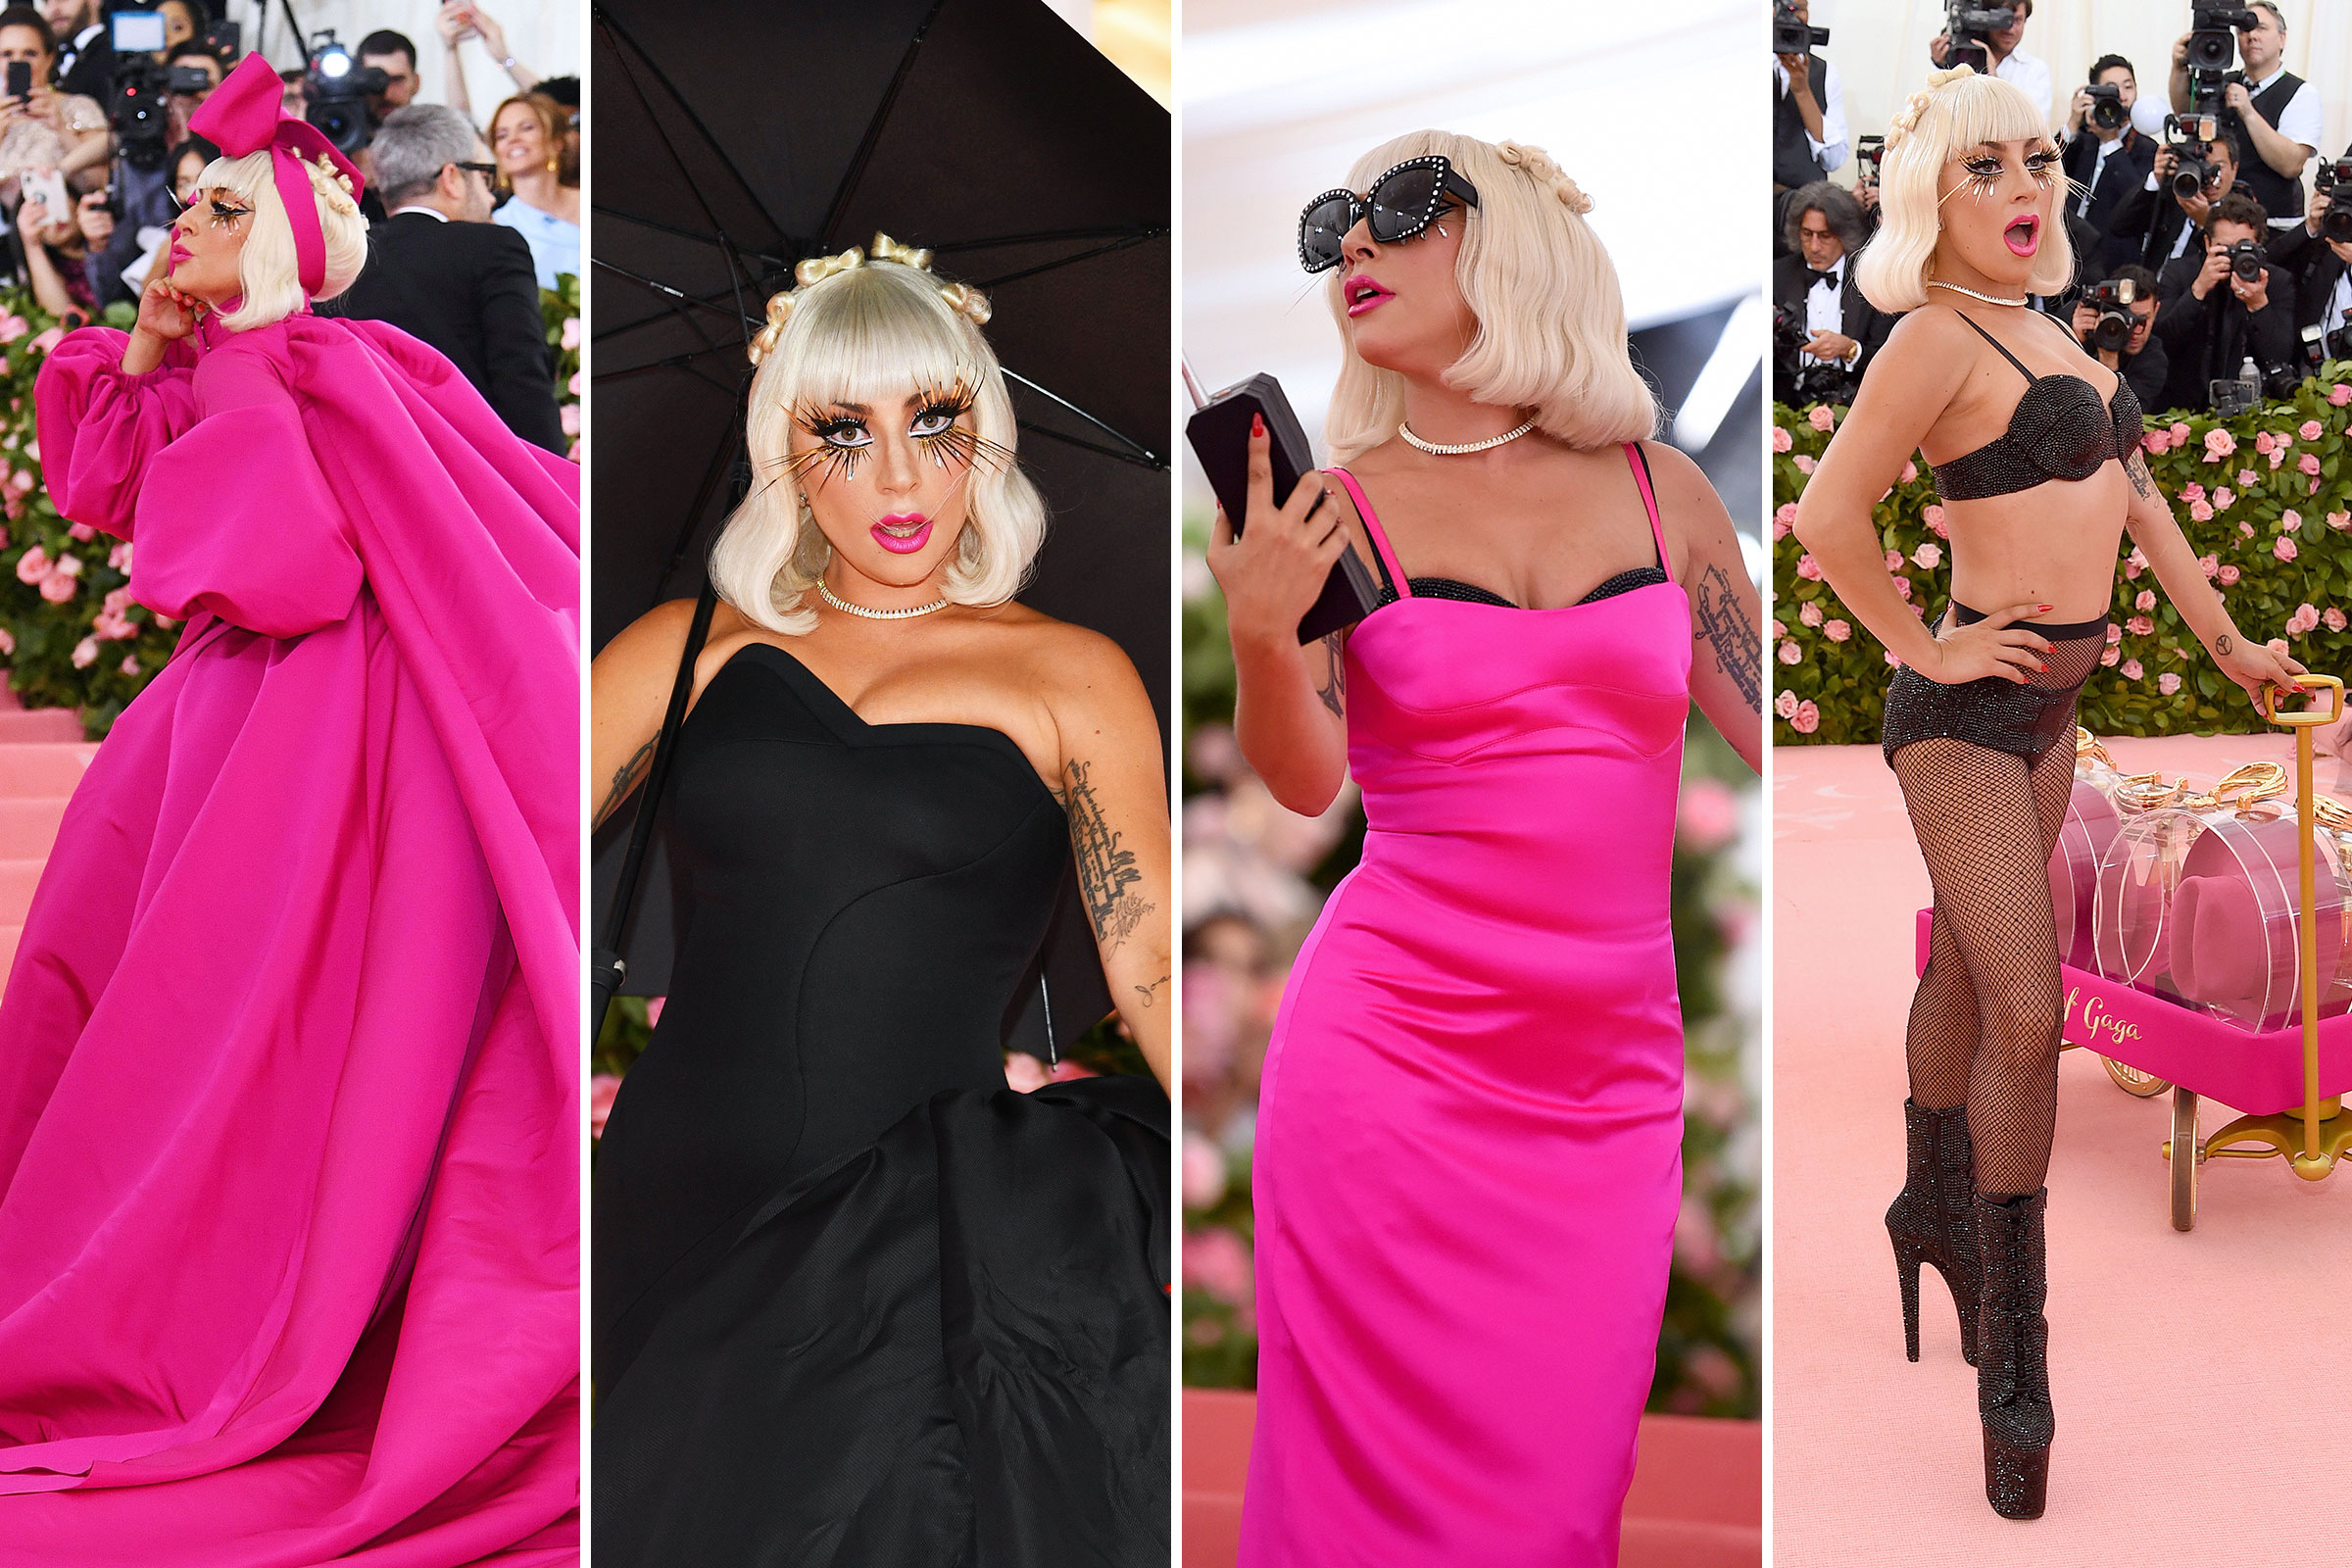 Lady Gaga attends The 2019 Met Gala Celebrating Camp: Notes on Fashion at Metropolitan Museum of Art in New York City on May 06, 2019.